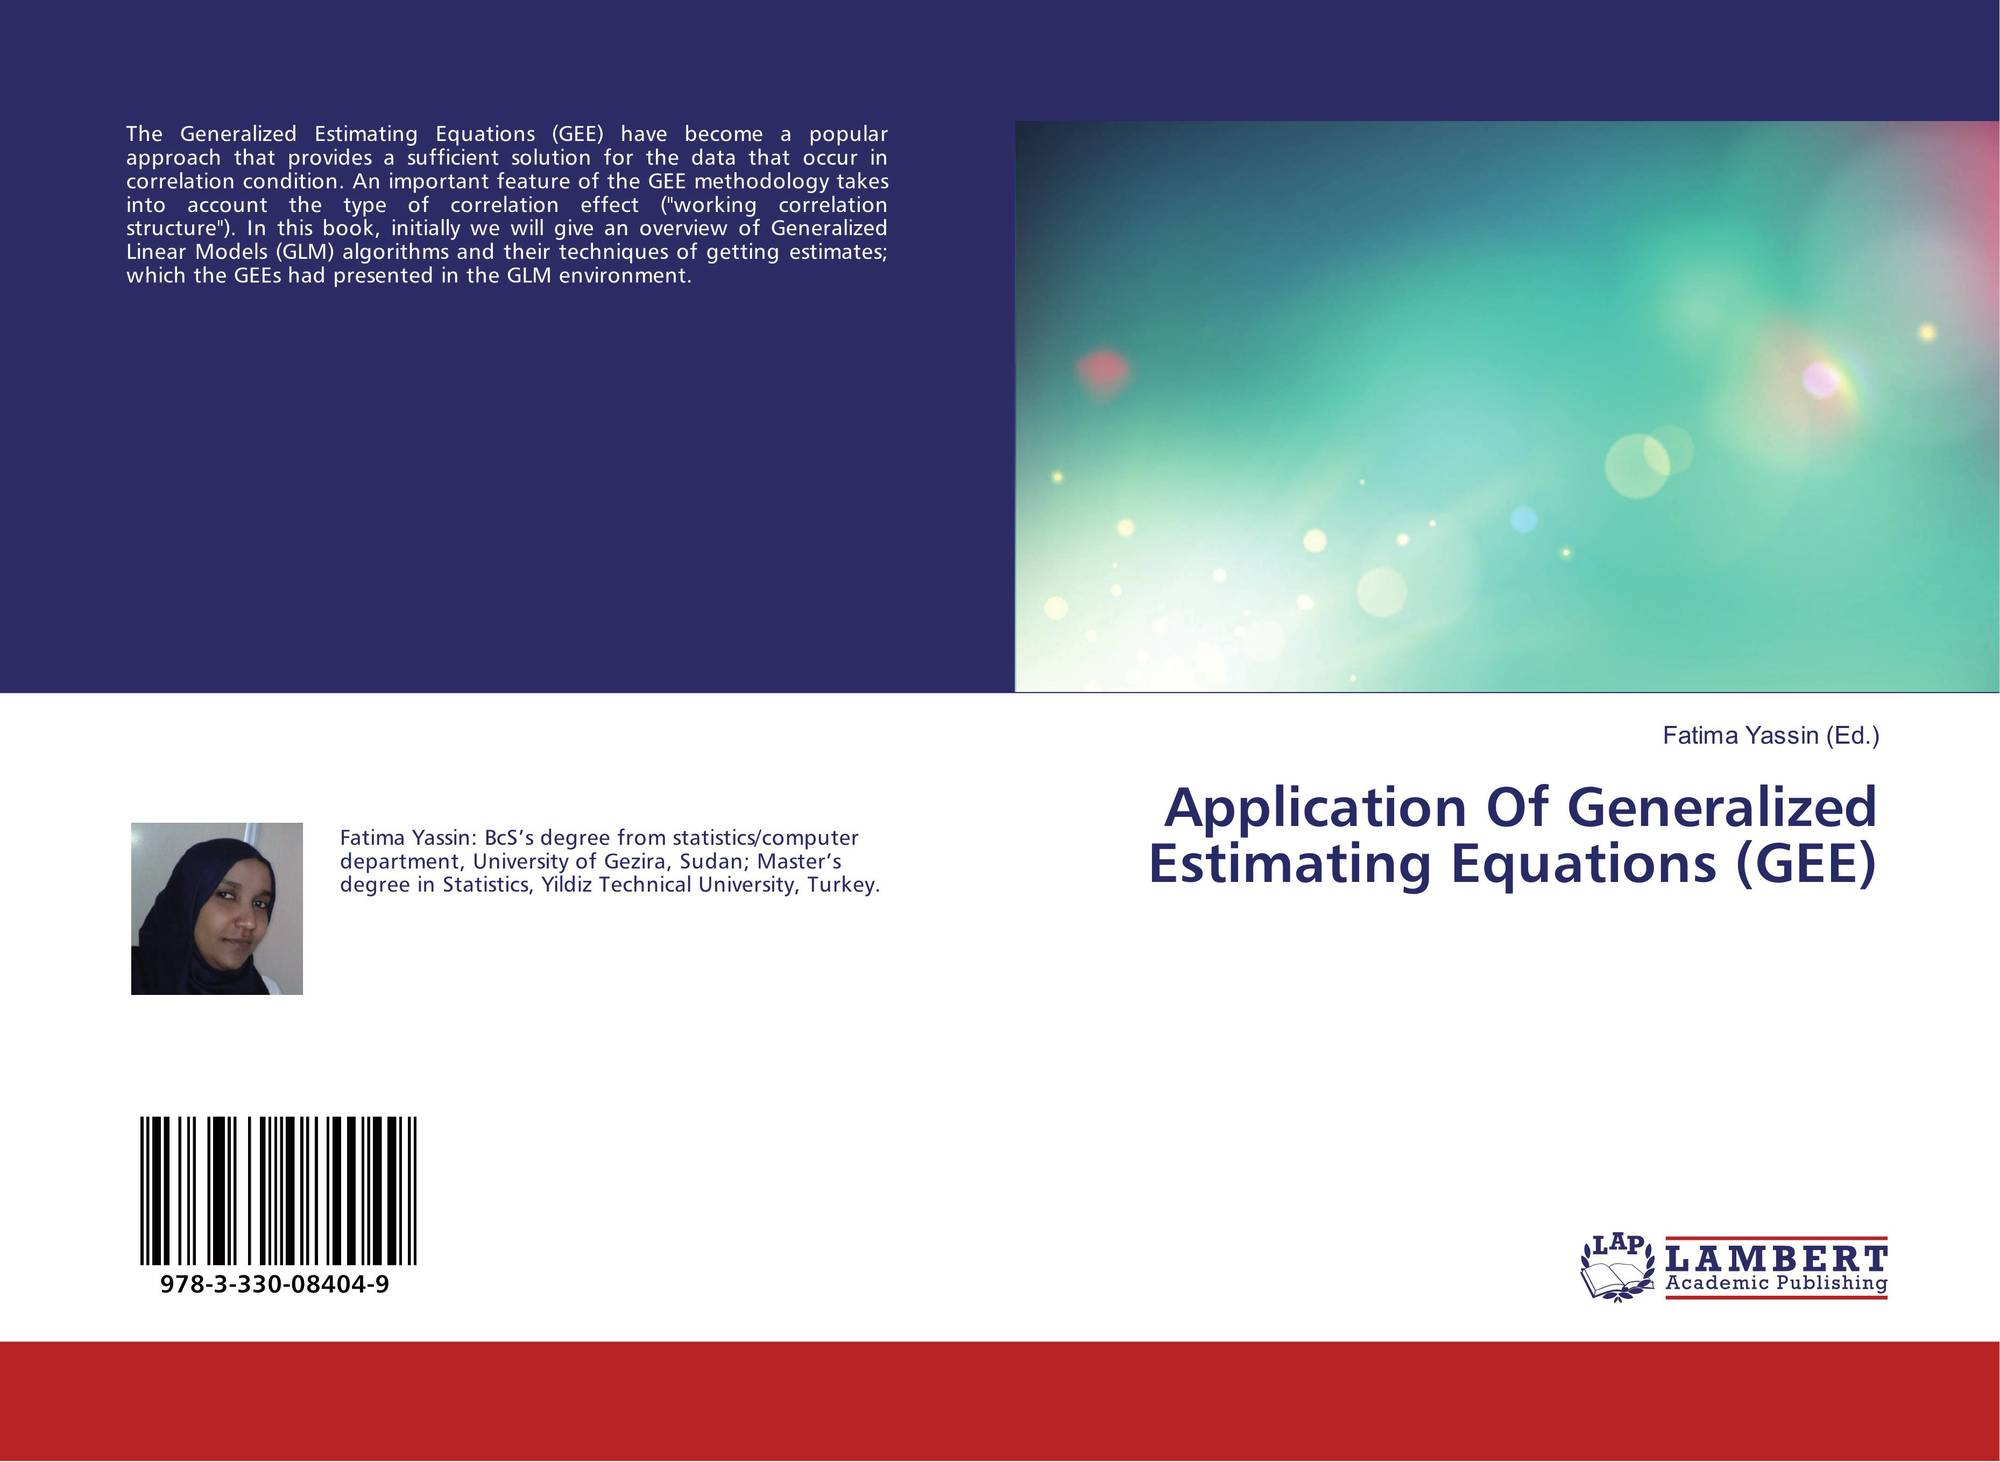 Application Of Generalized Estimating Equations (GEE), 978-3